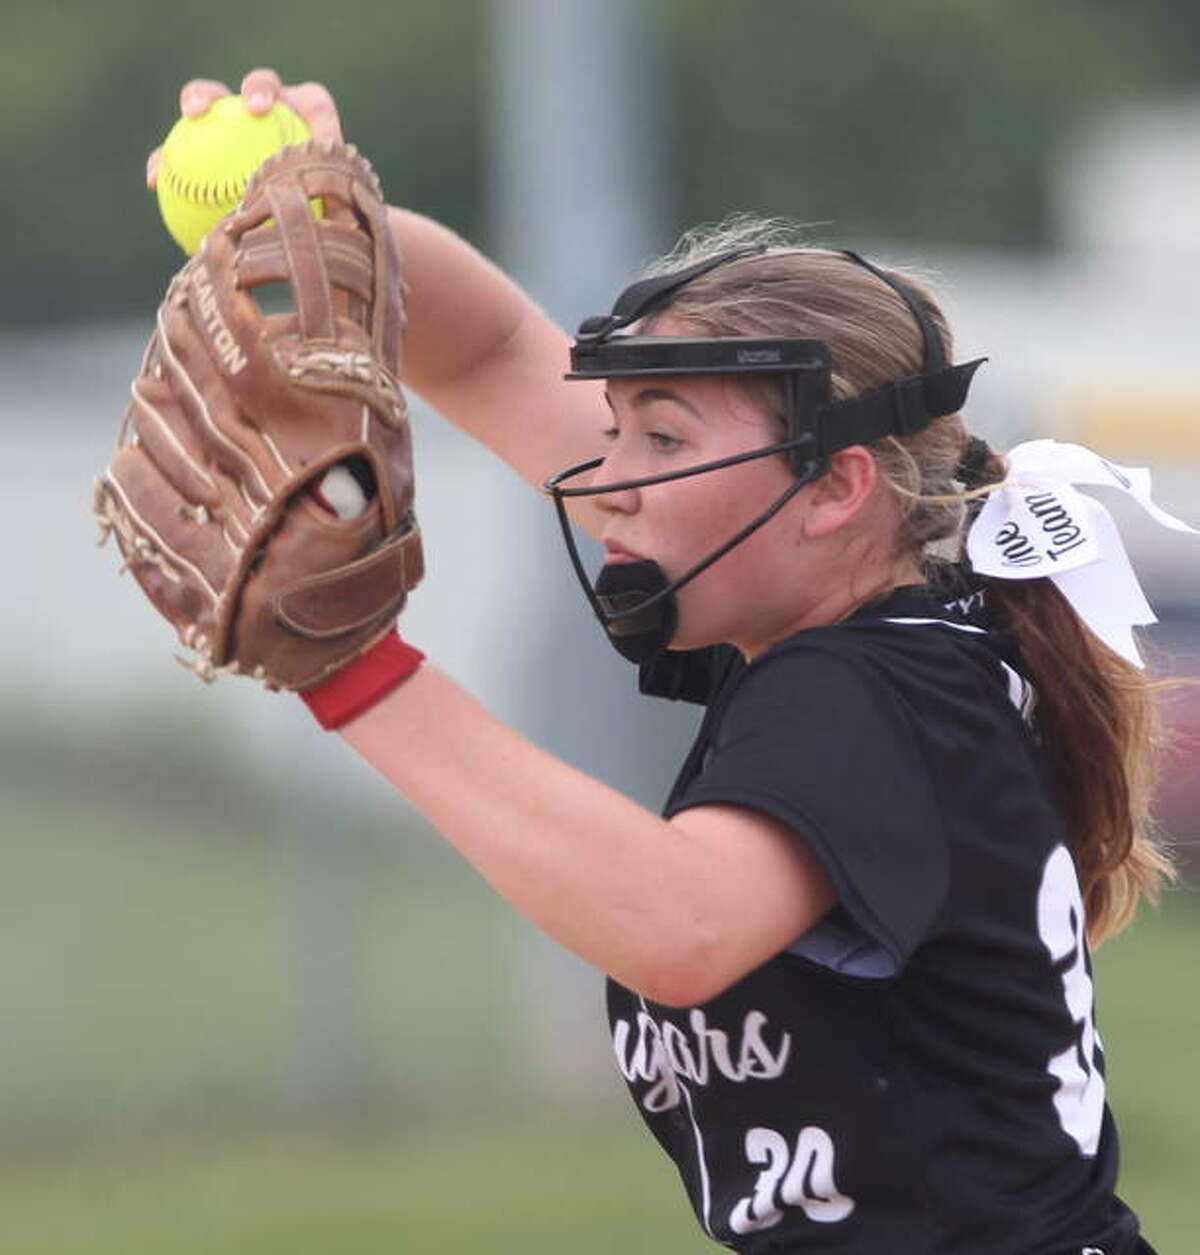 West Central's Rylee Burk delivers a pitch against Griggsville-Perry.